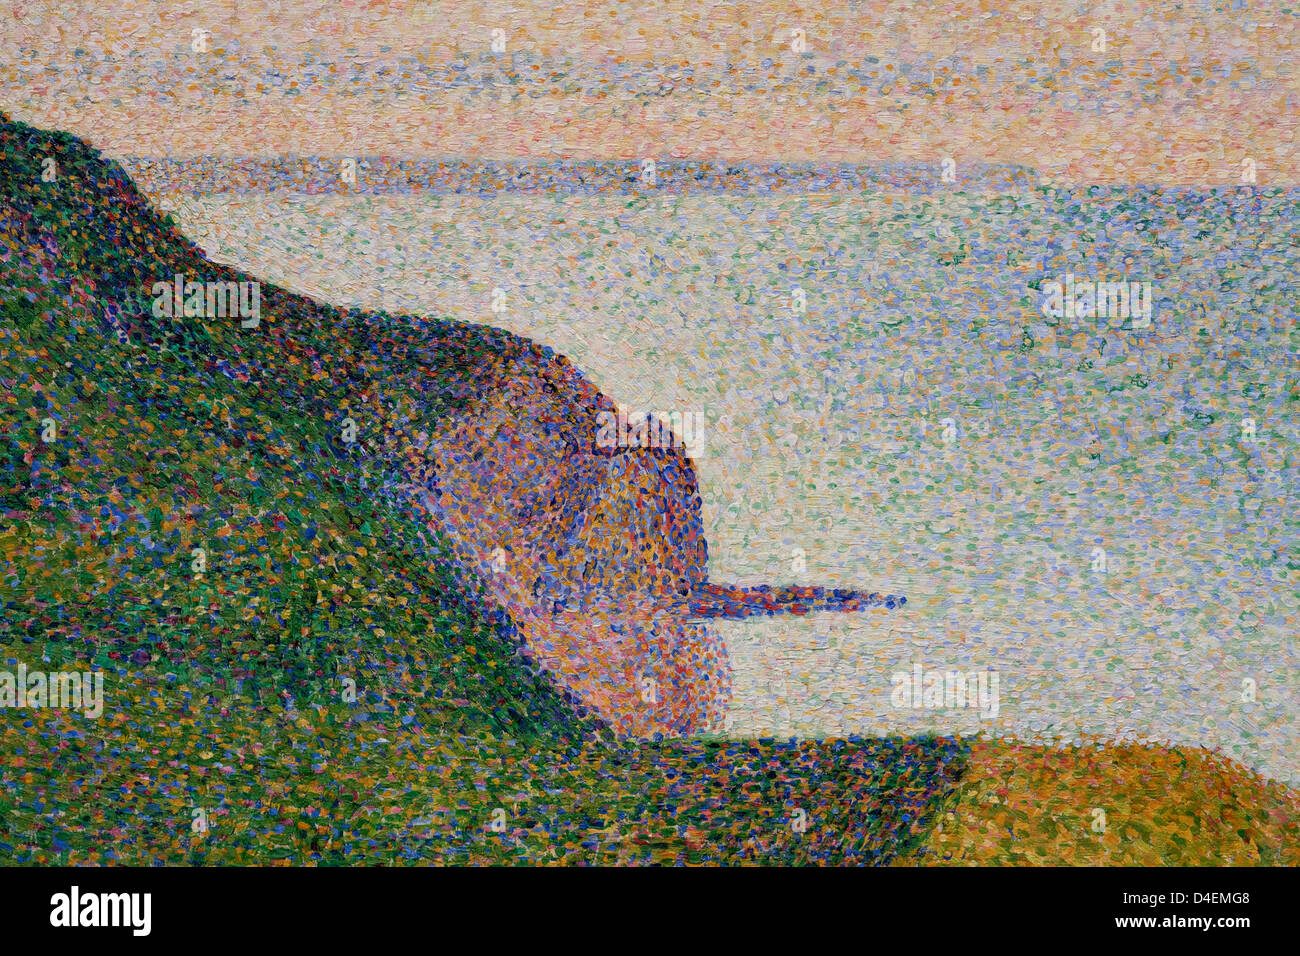 Detail of Seascape at Port-en-Bessin, Normandy by Georges Seurat, 1888 - Stock Image